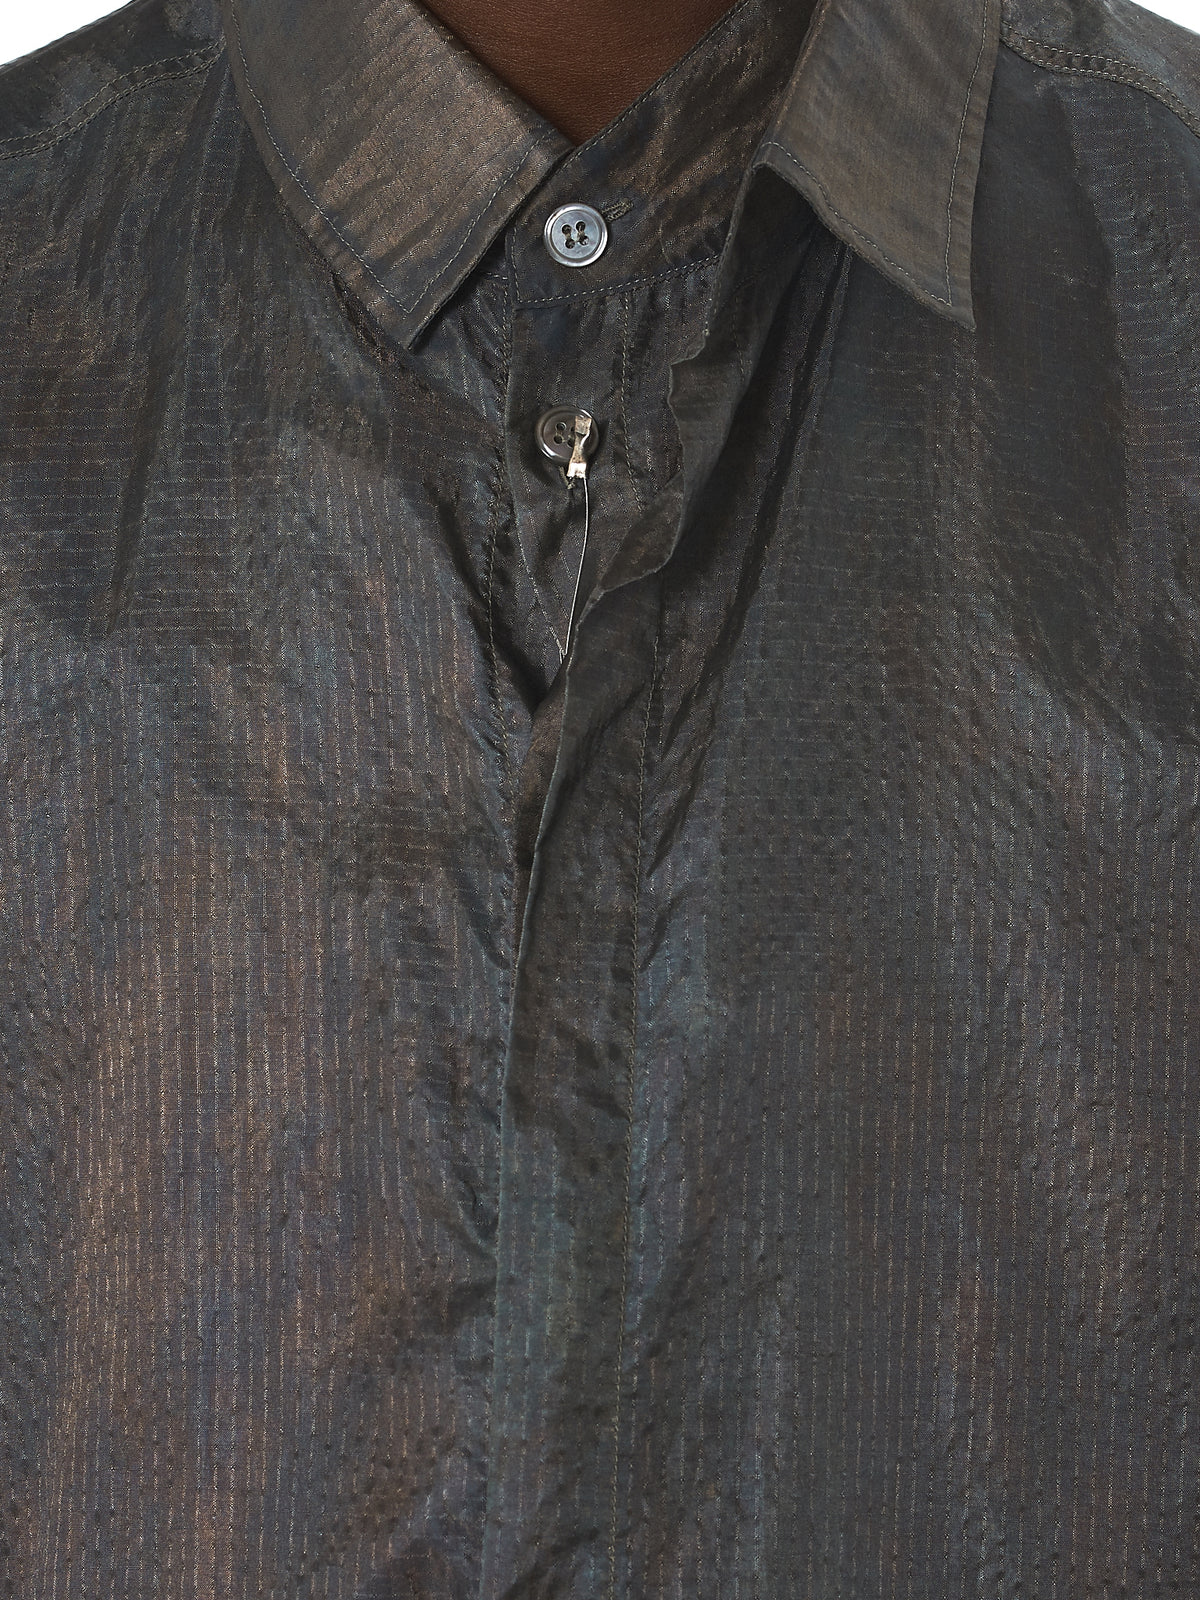 Deepti Metallic Shirt - Hlorenzo Detail 2